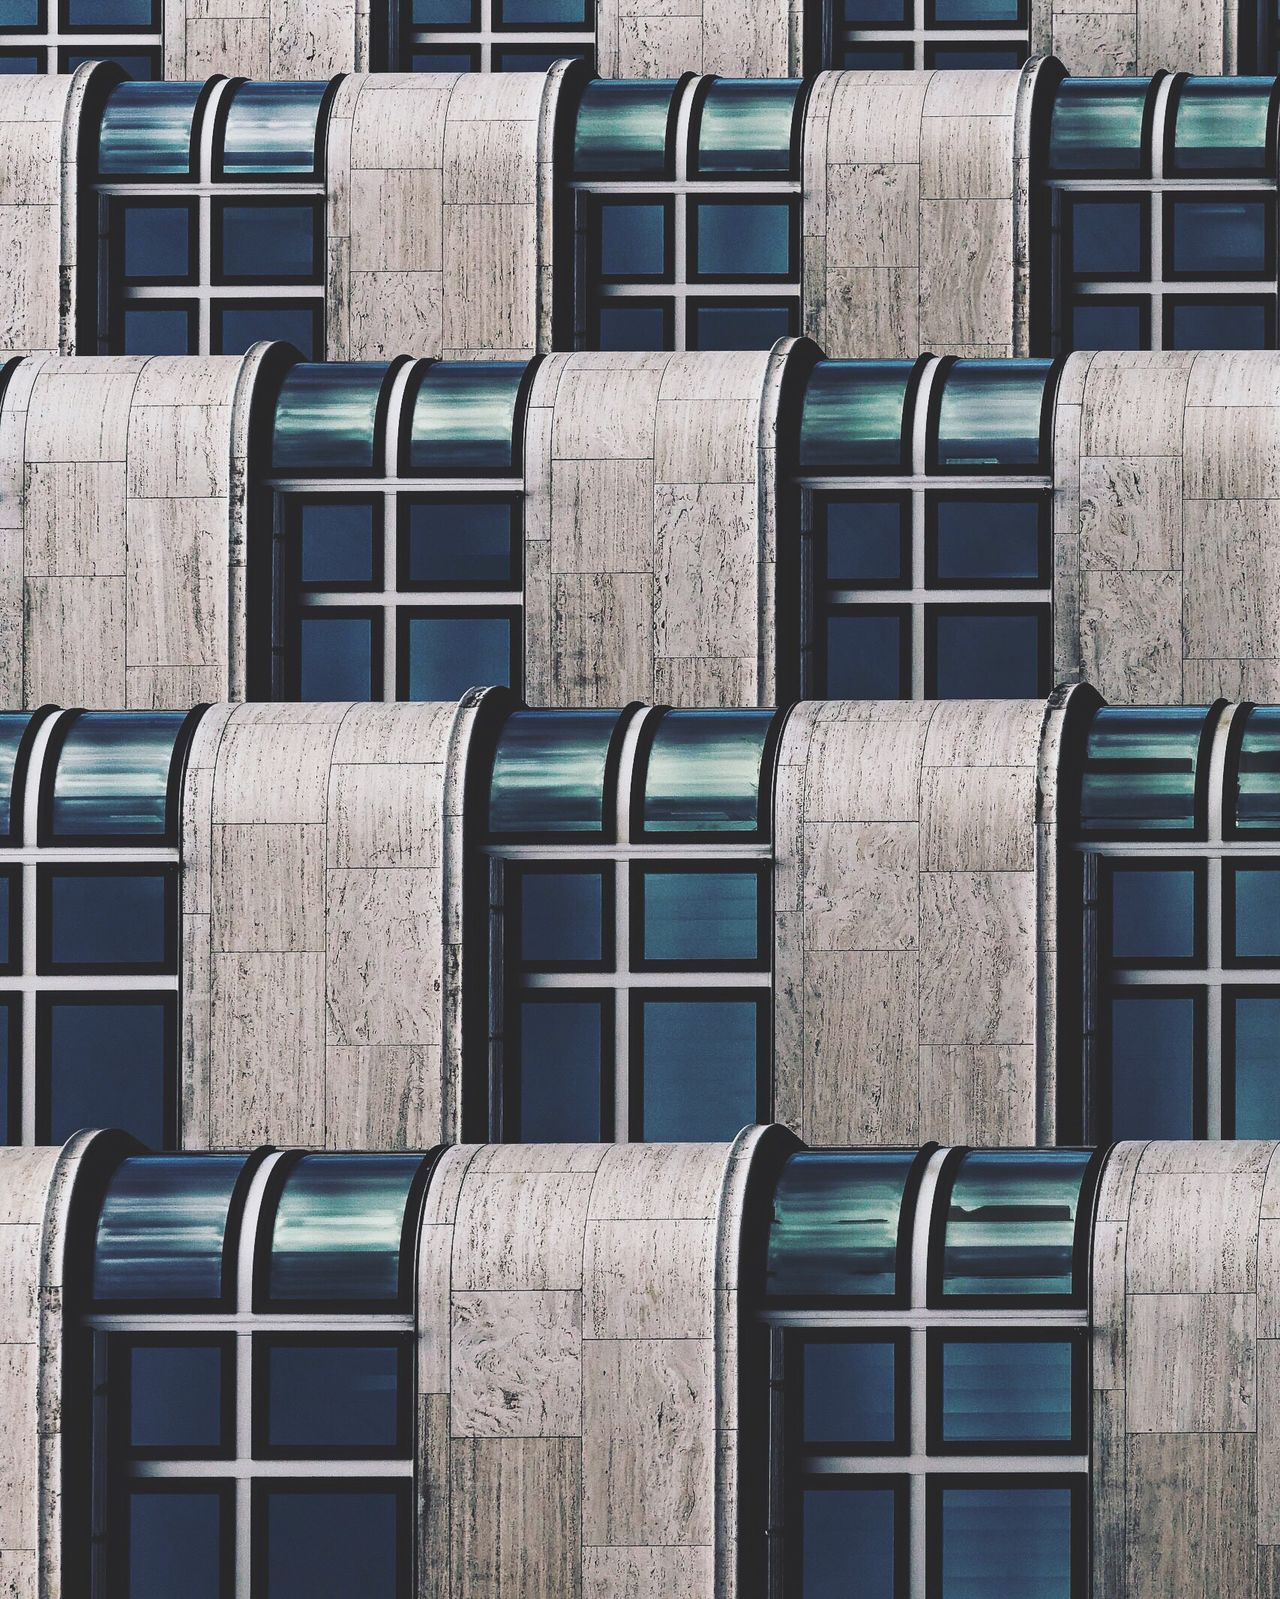 Berlin Facades. Berlin Berliner Ansichten Berlin Photography Berlinstagram Shell Haus  Window Built Structure Architecture In A Row Repetition Building Exterior Full Frame Outdoors Blue Order Exterior No People City Life Architecture Architecture_collection Architectural Detail Architecturelovers Pattern Pattern, Texture, Shape And Form The Architect - 2017 EyeEm Awards